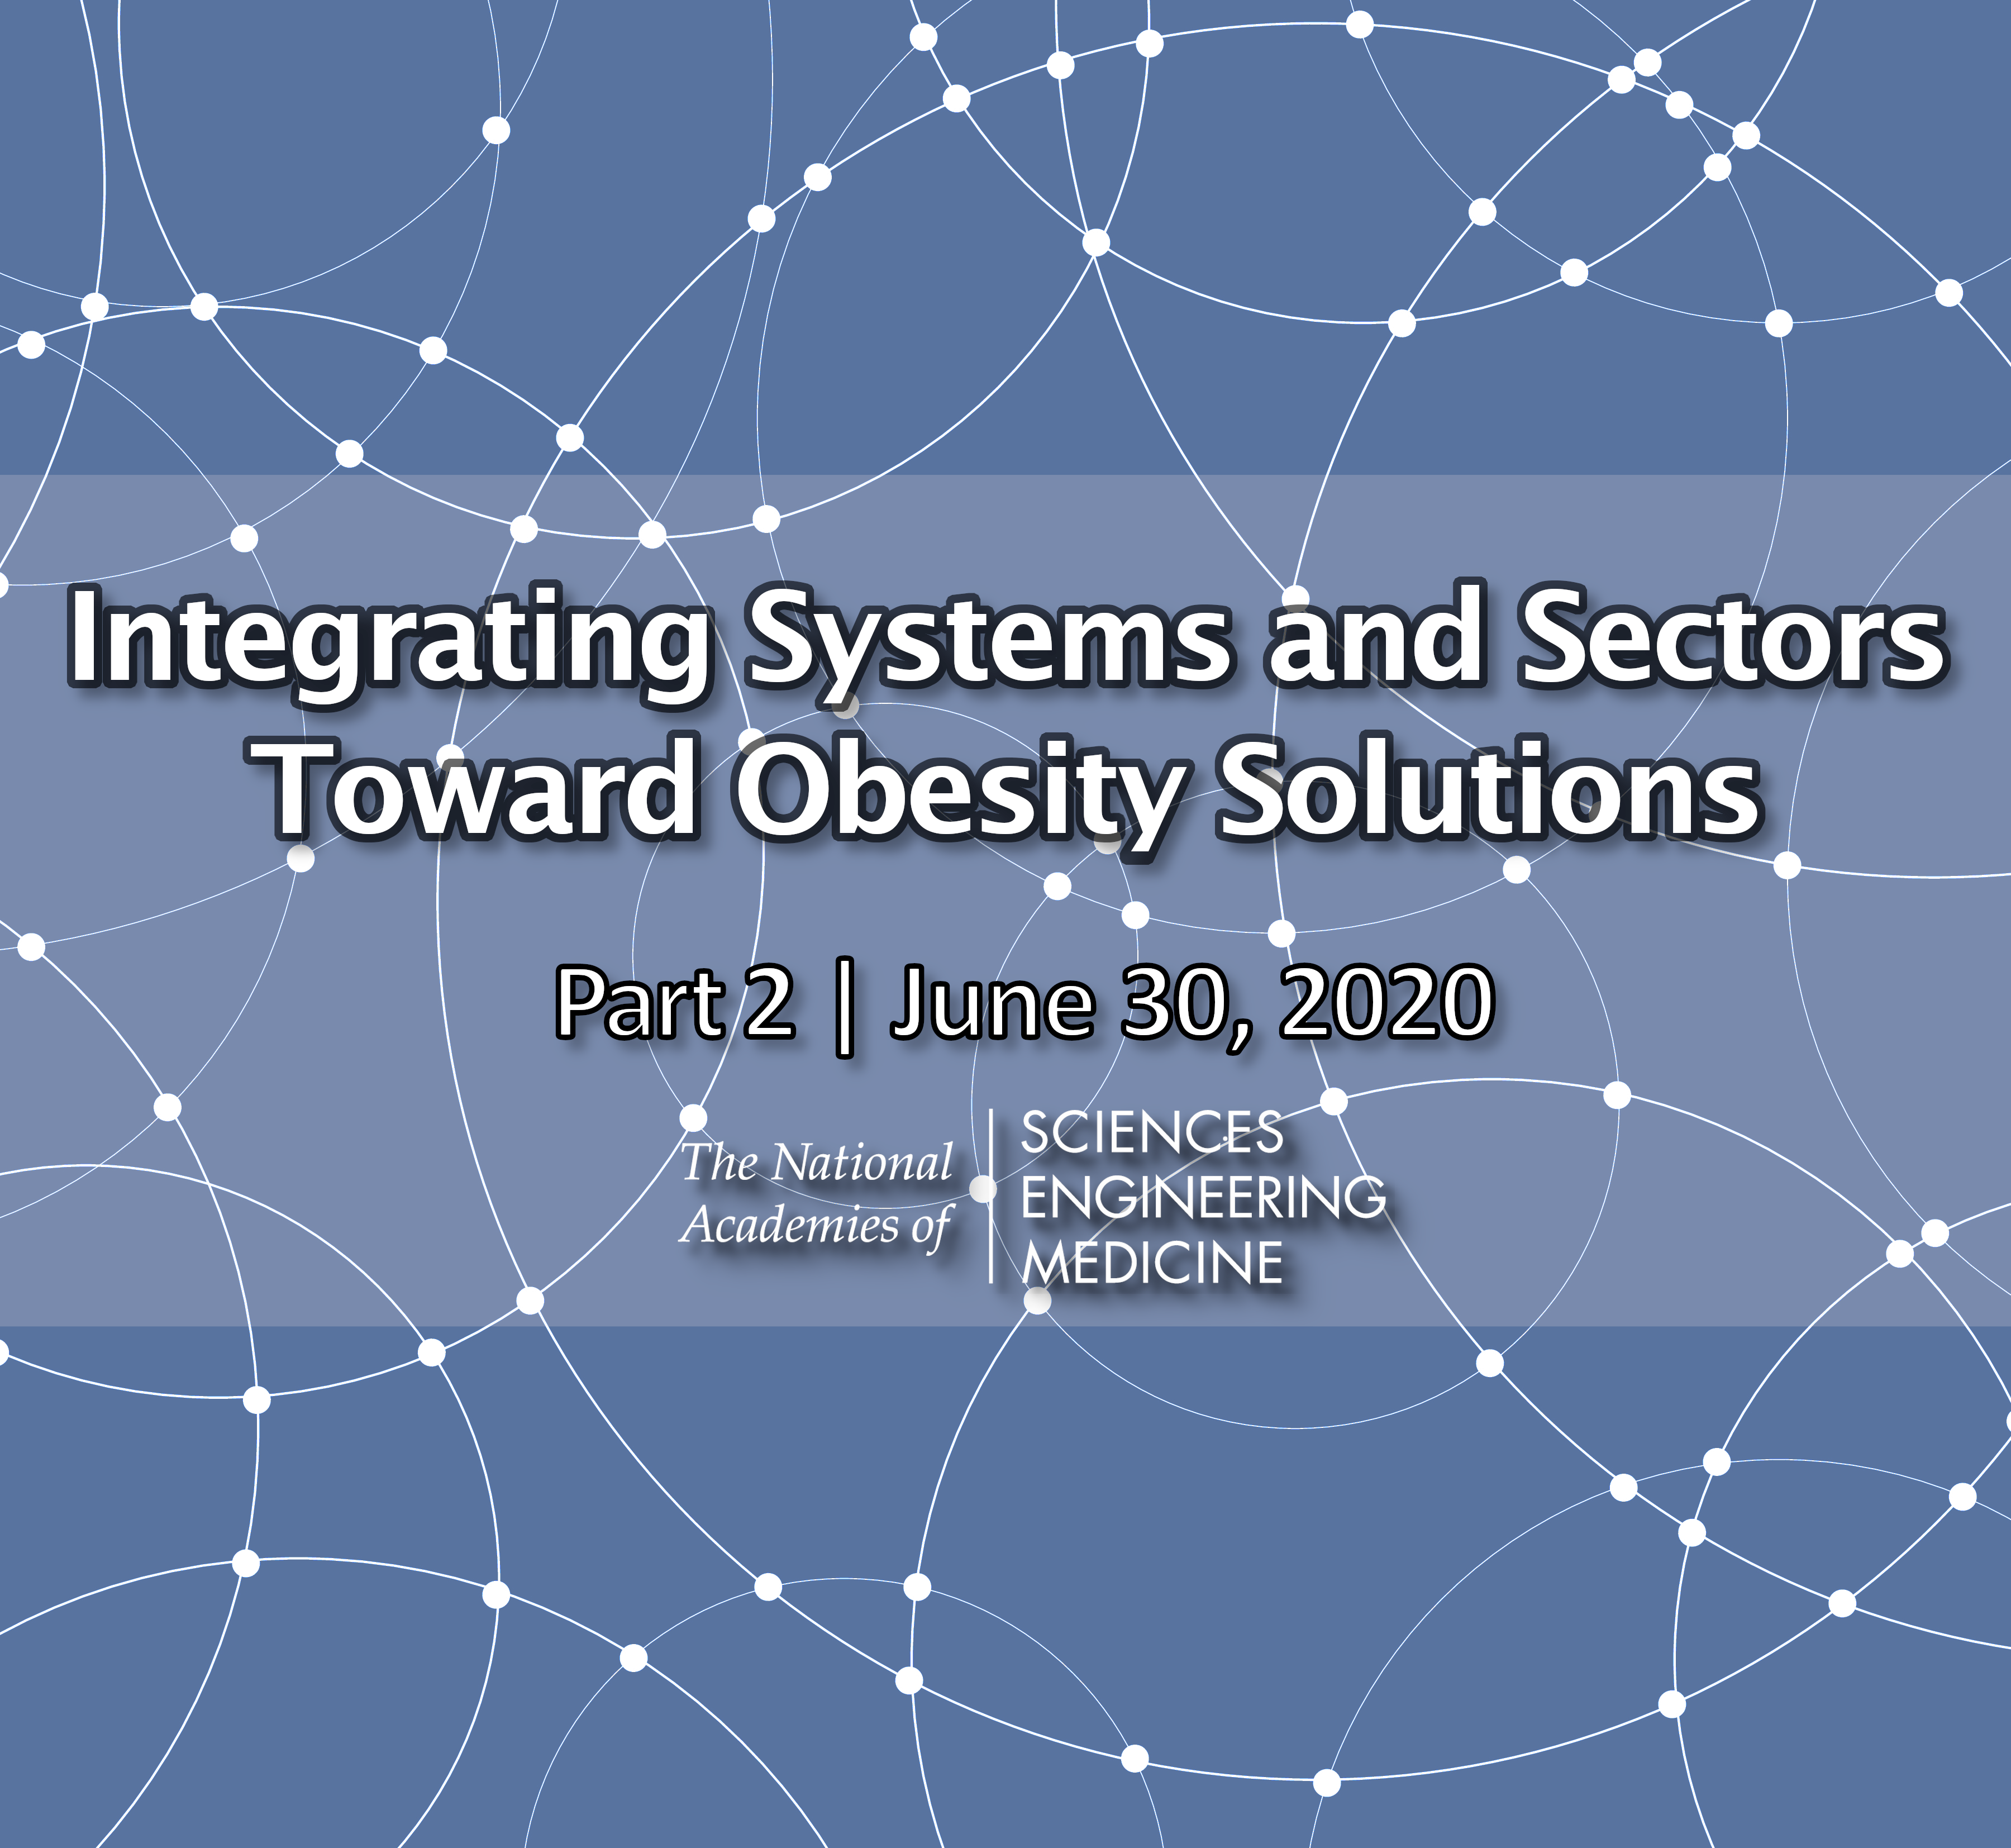 Integrating Systems and Sectors Towards Obesity Solutions